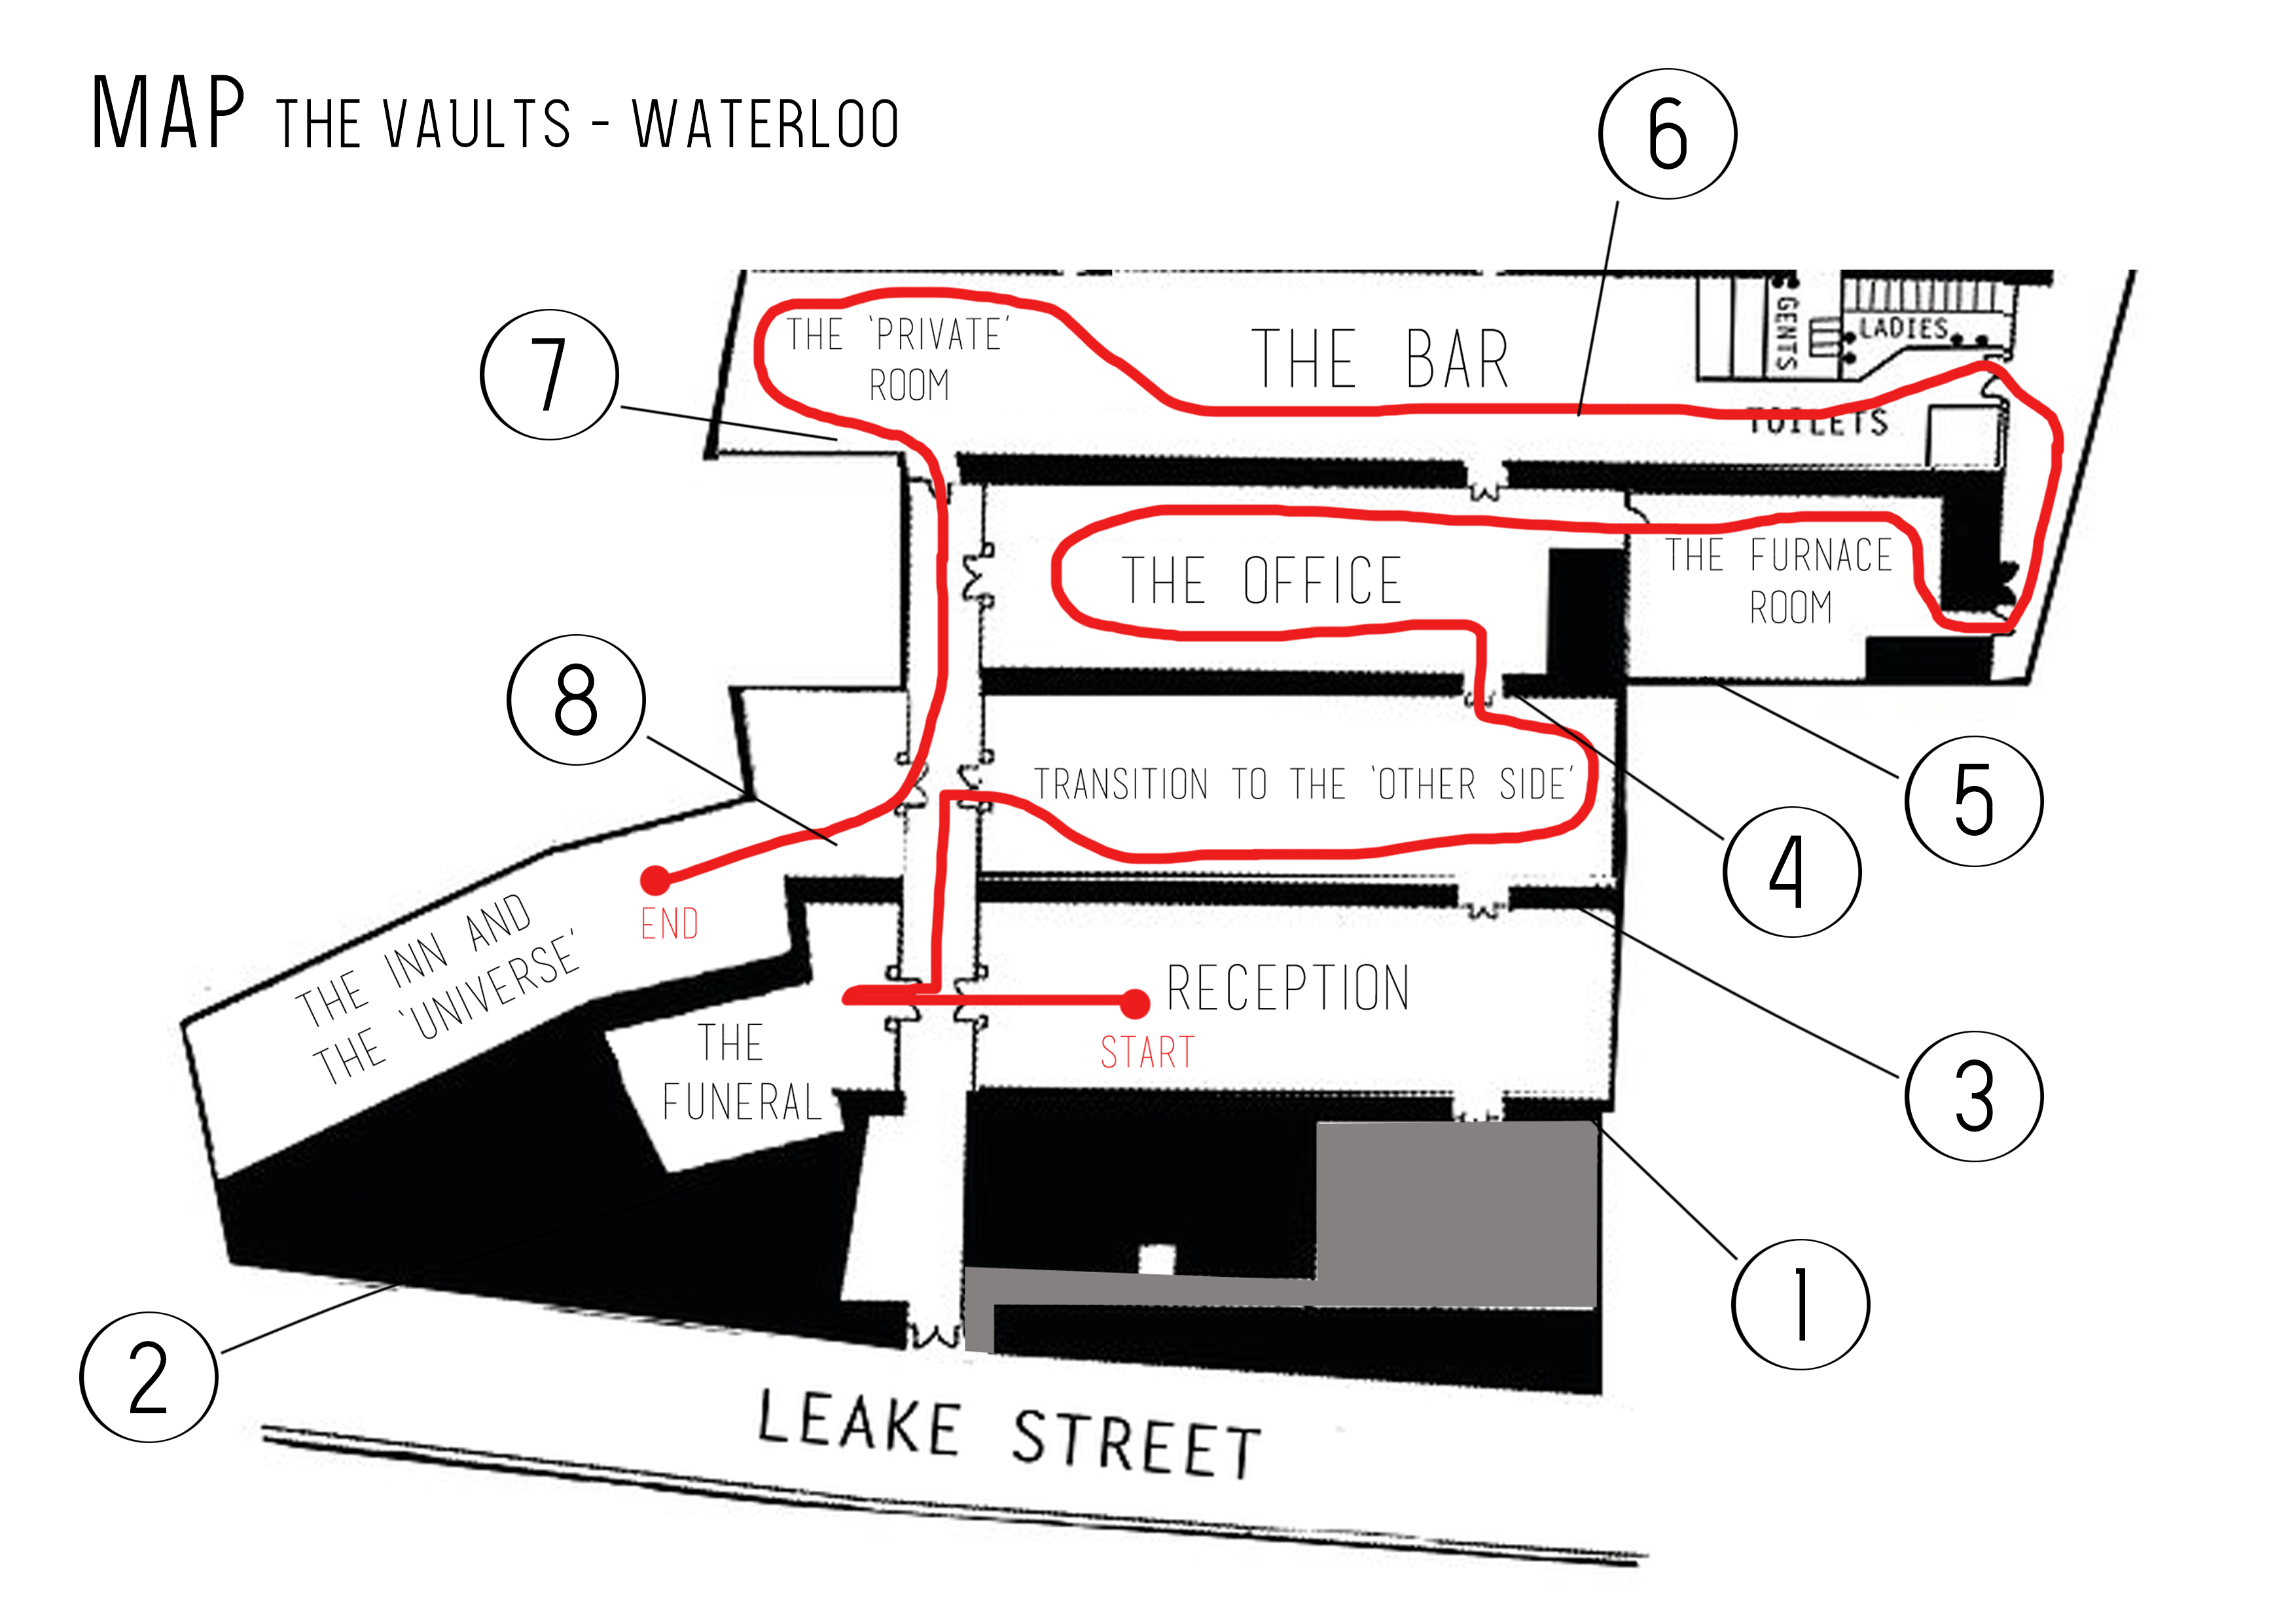 Map of the Vaults Waterloo